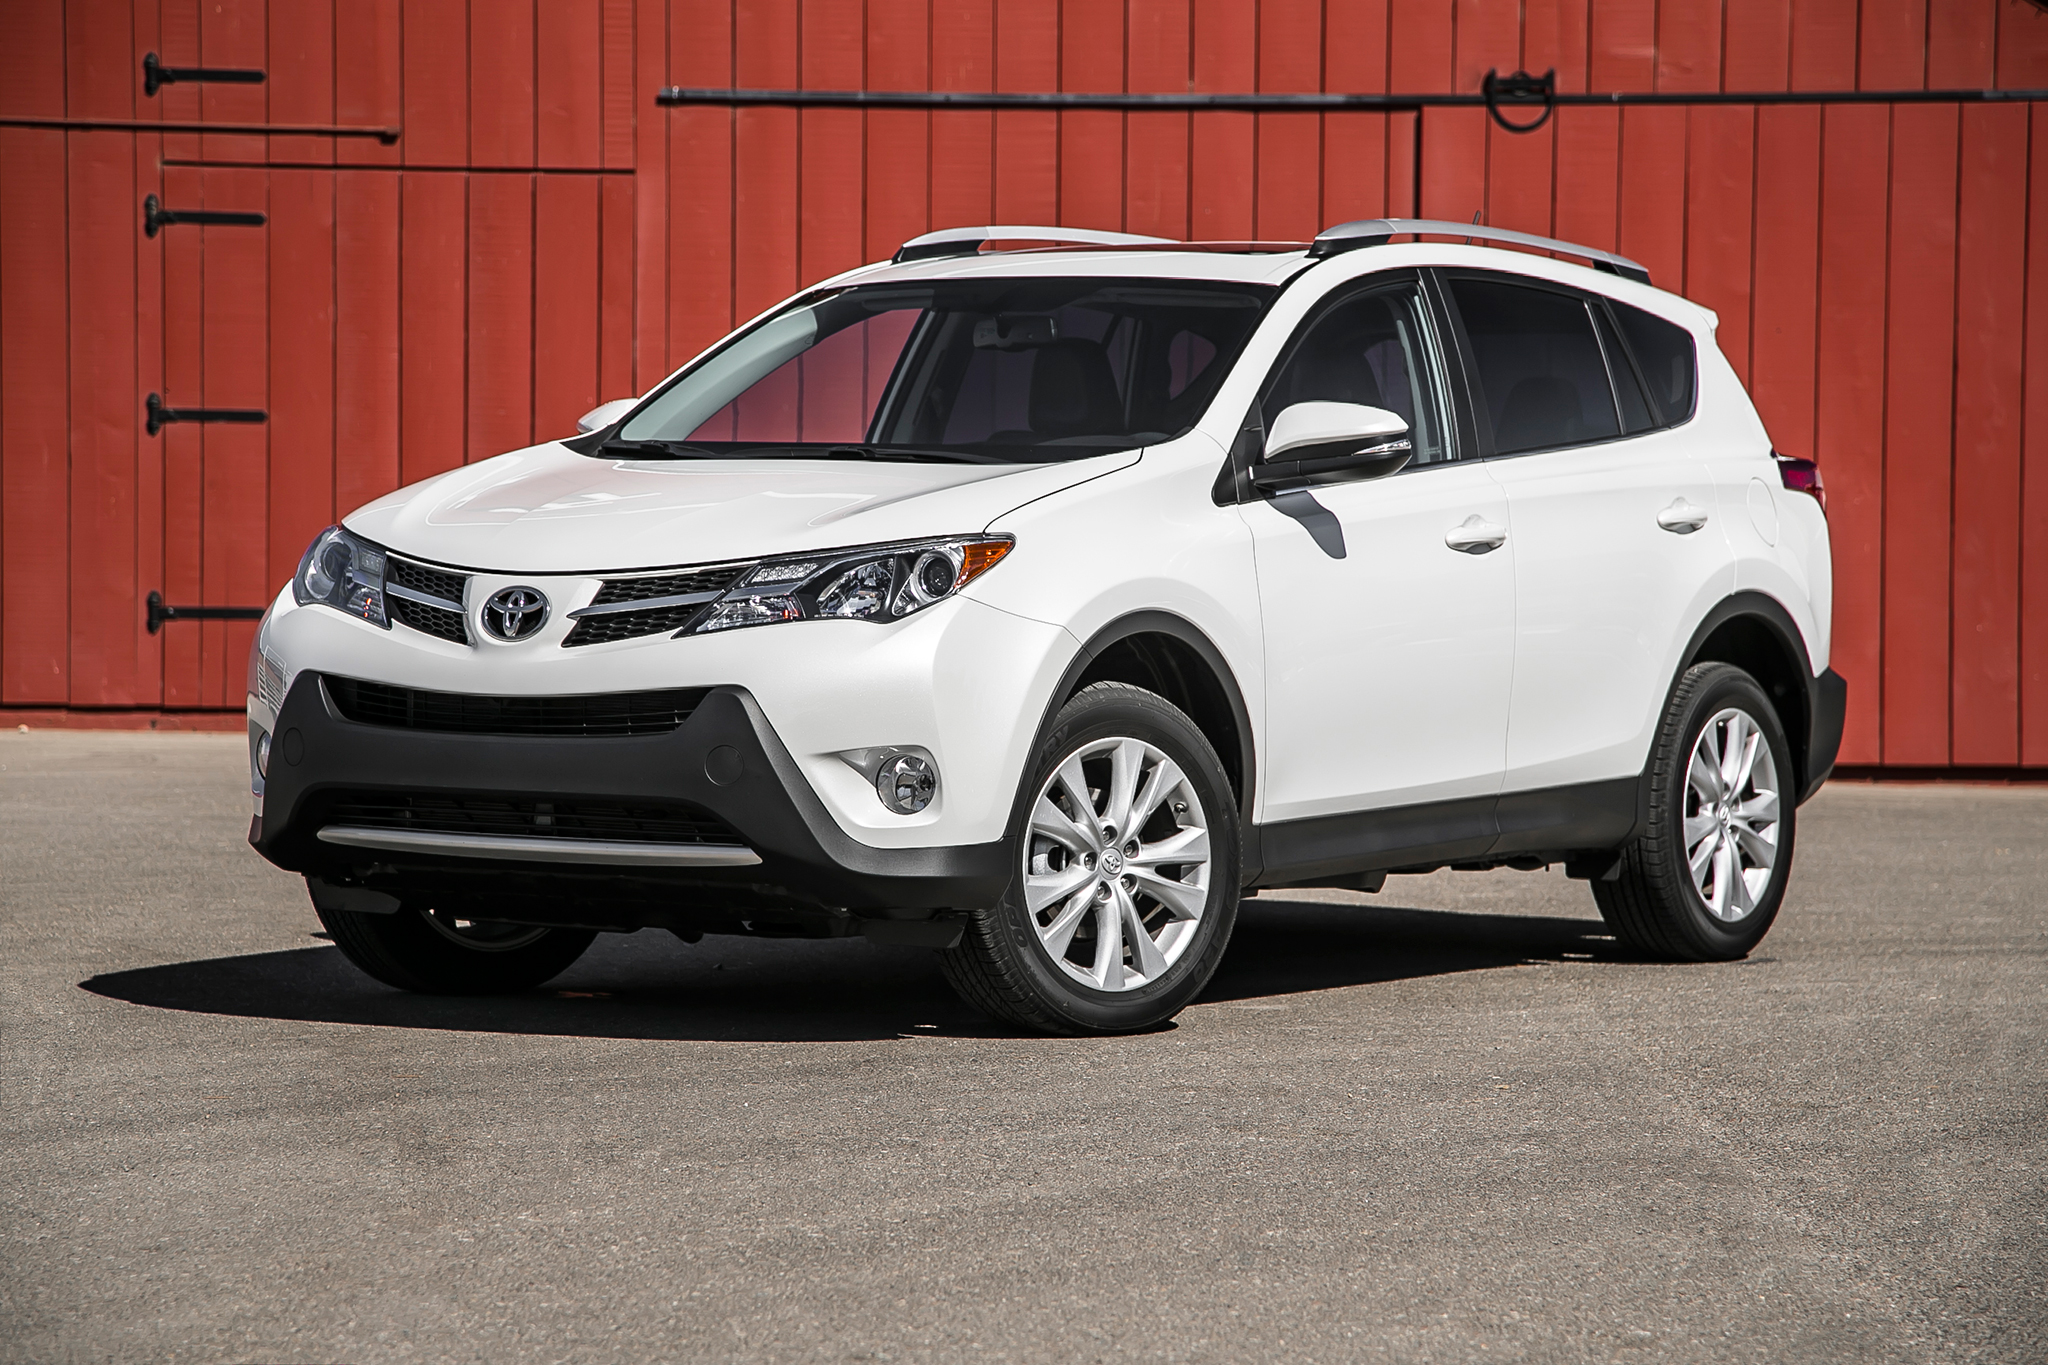 2014 toyota rav4 photos informations articles. Black Bedroom Furniture Sets. Home Design Ideas